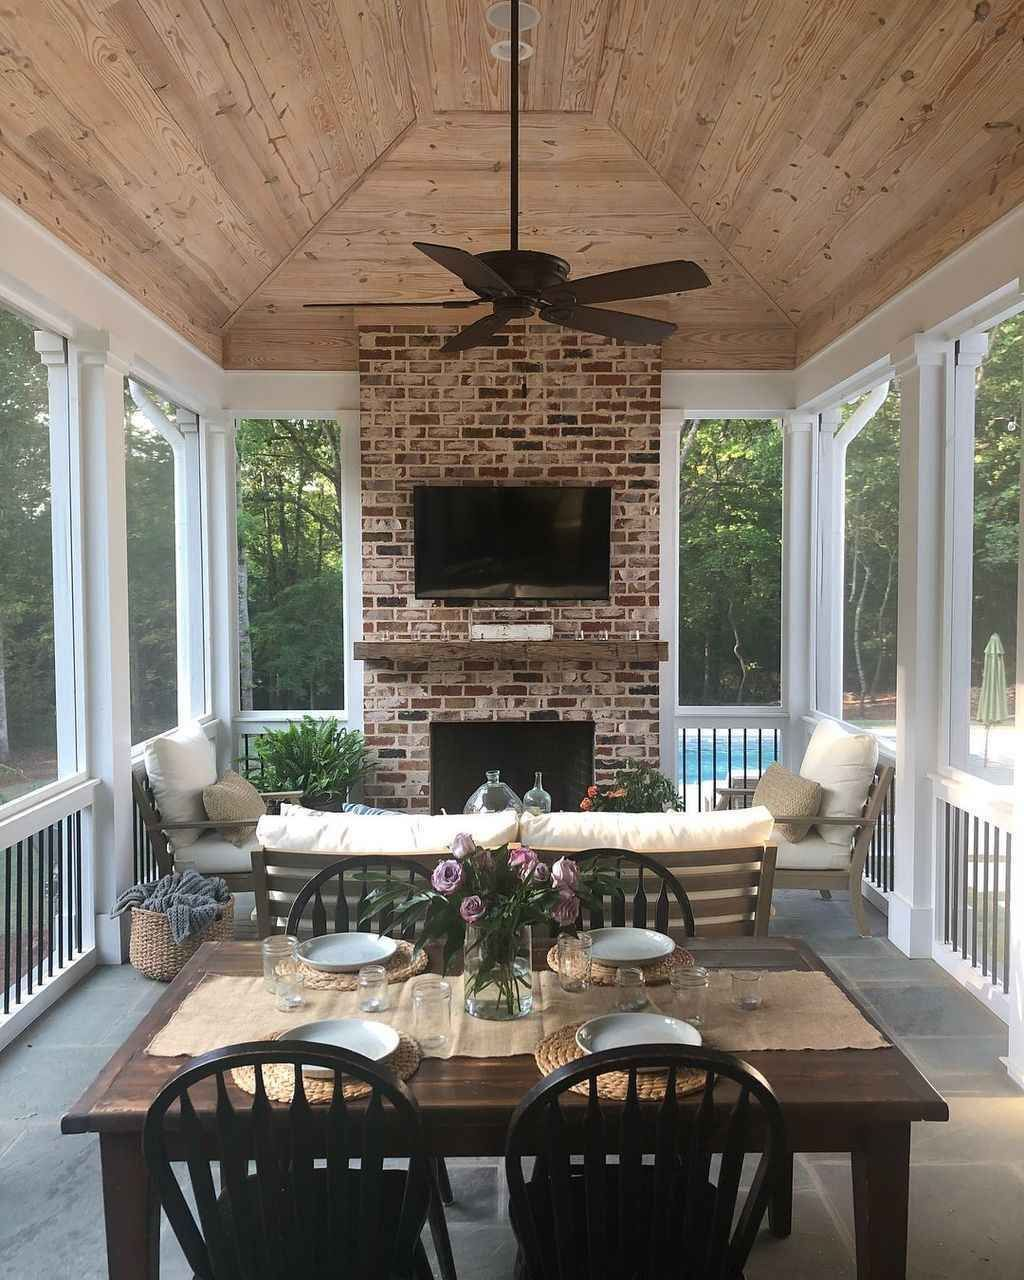 48 Beautiful Porch Design Ideas To Copy Right Now In 2020 Beautiful Home Designs House With Porch Sunroom Decorating